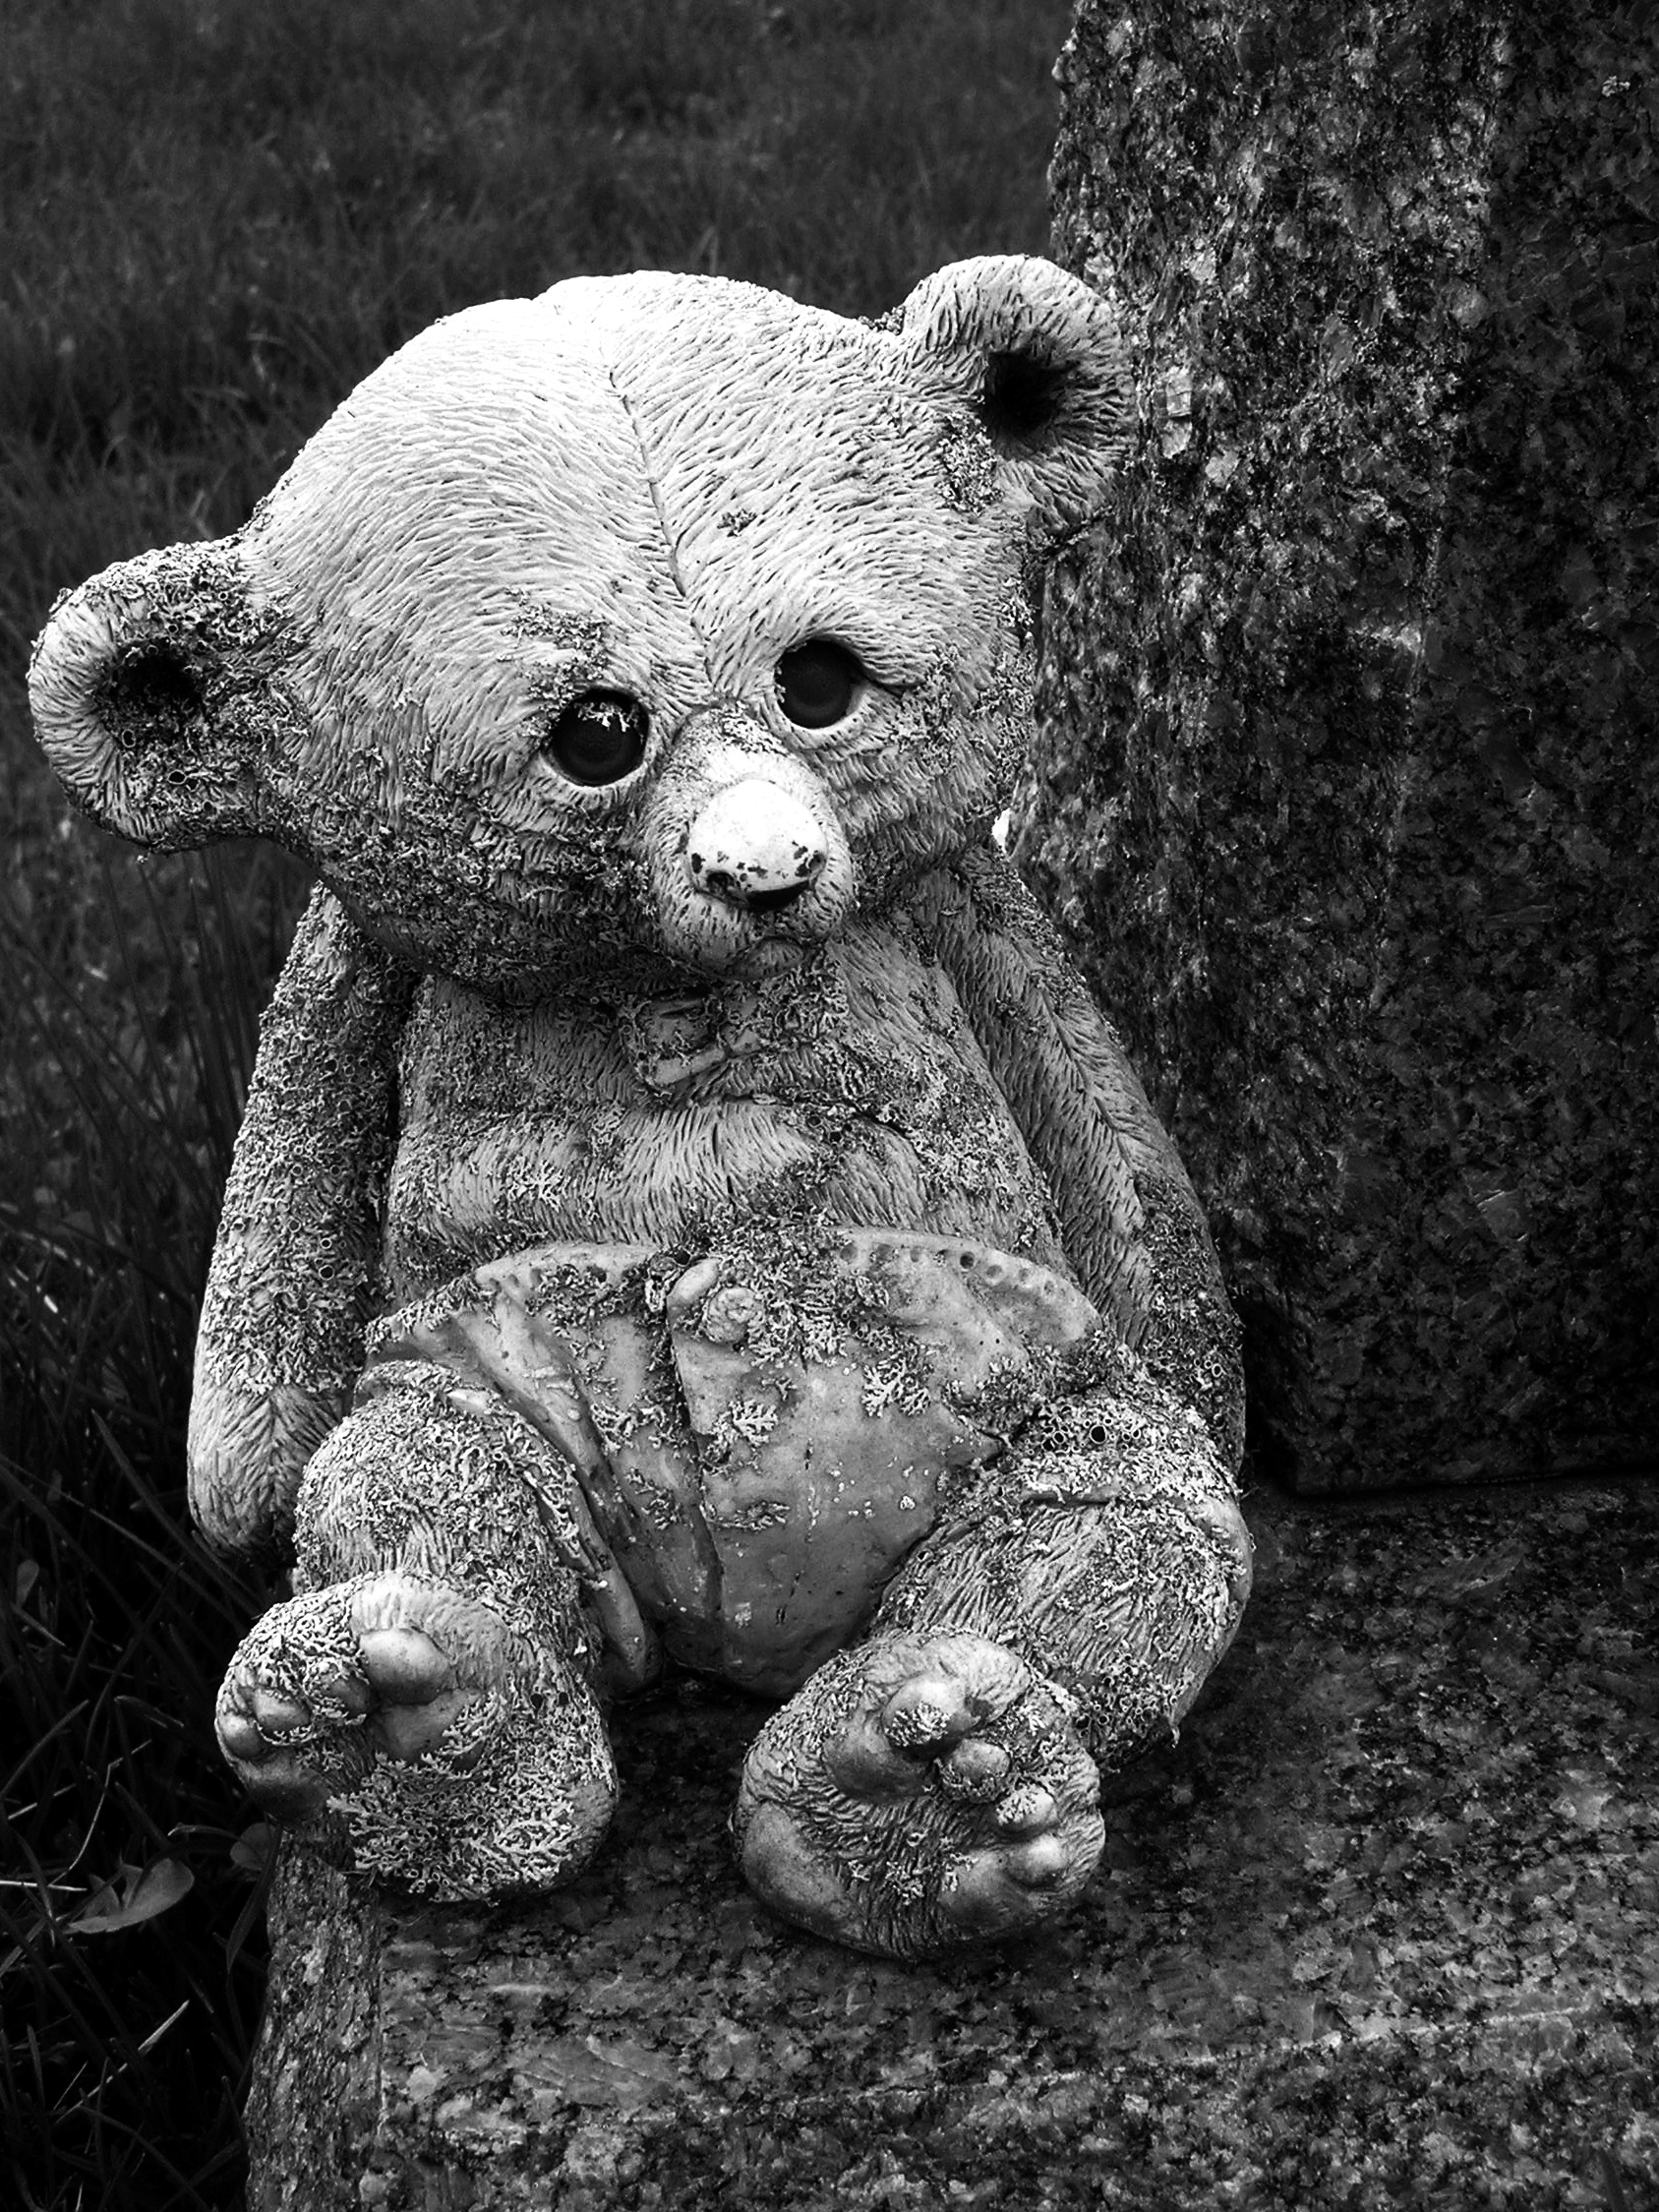 Tombstone teddy bear photo